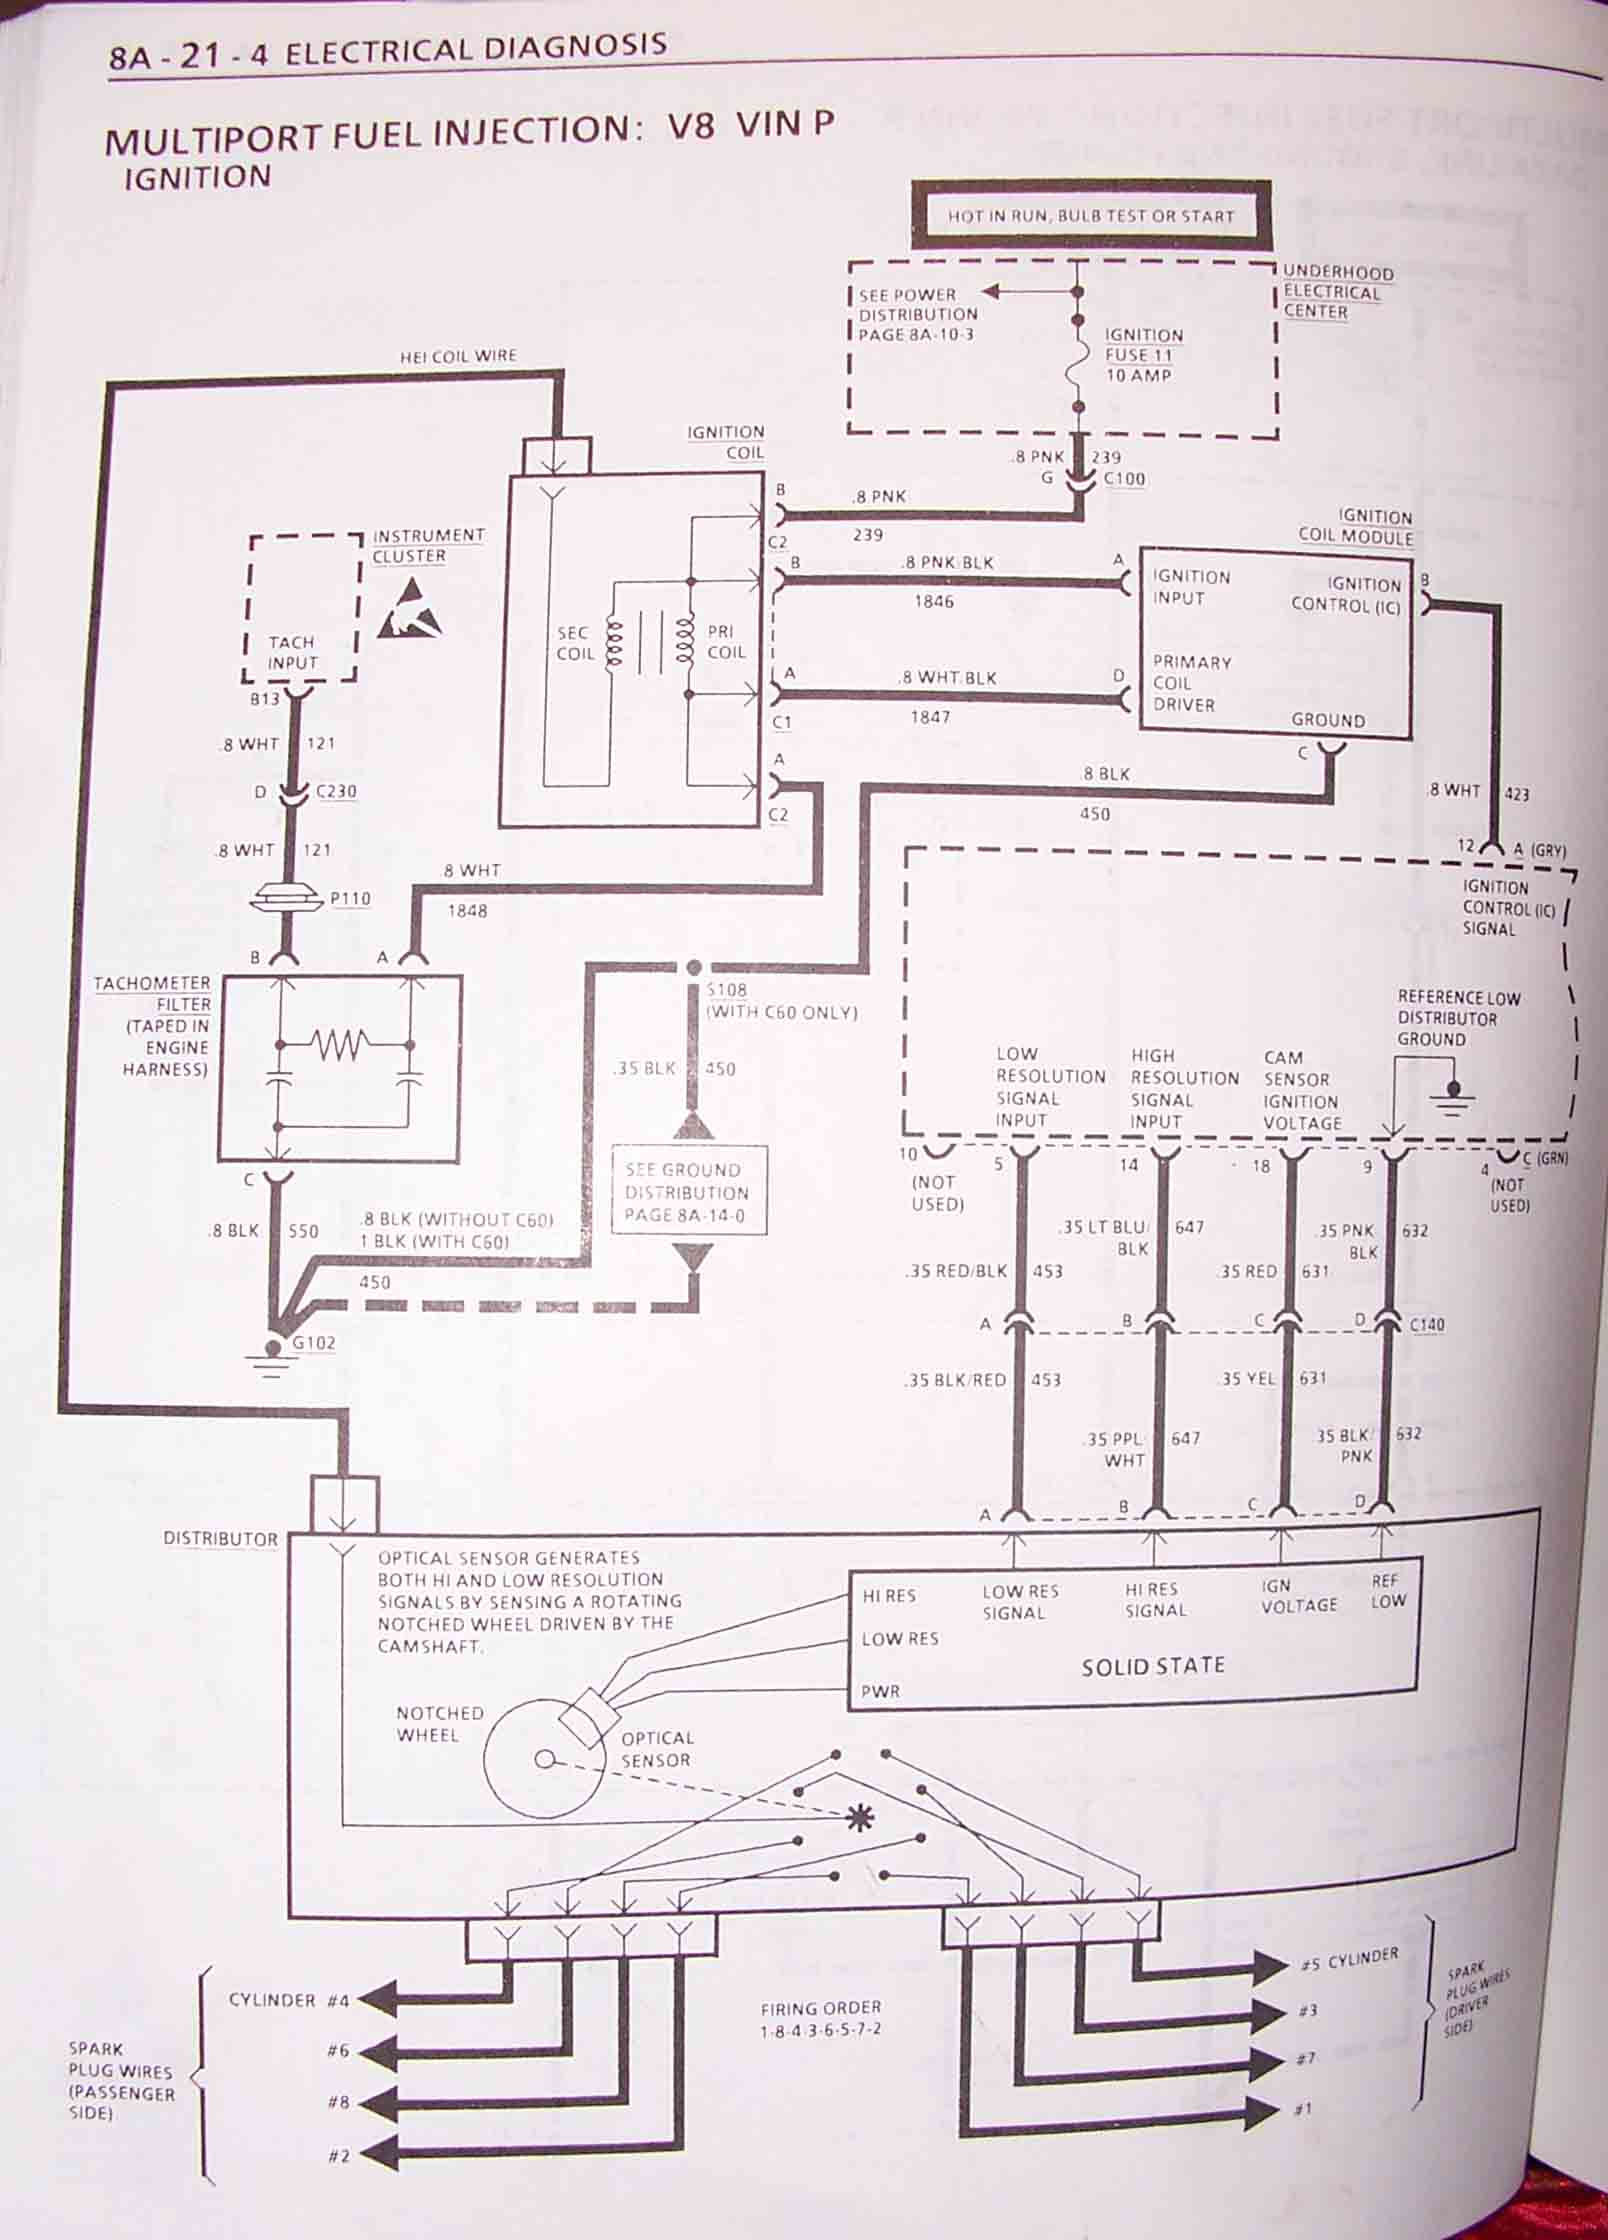 1995 Corvette Wiring Diagram Wiring Diagram Teach Teach Lechicchedimammavale It